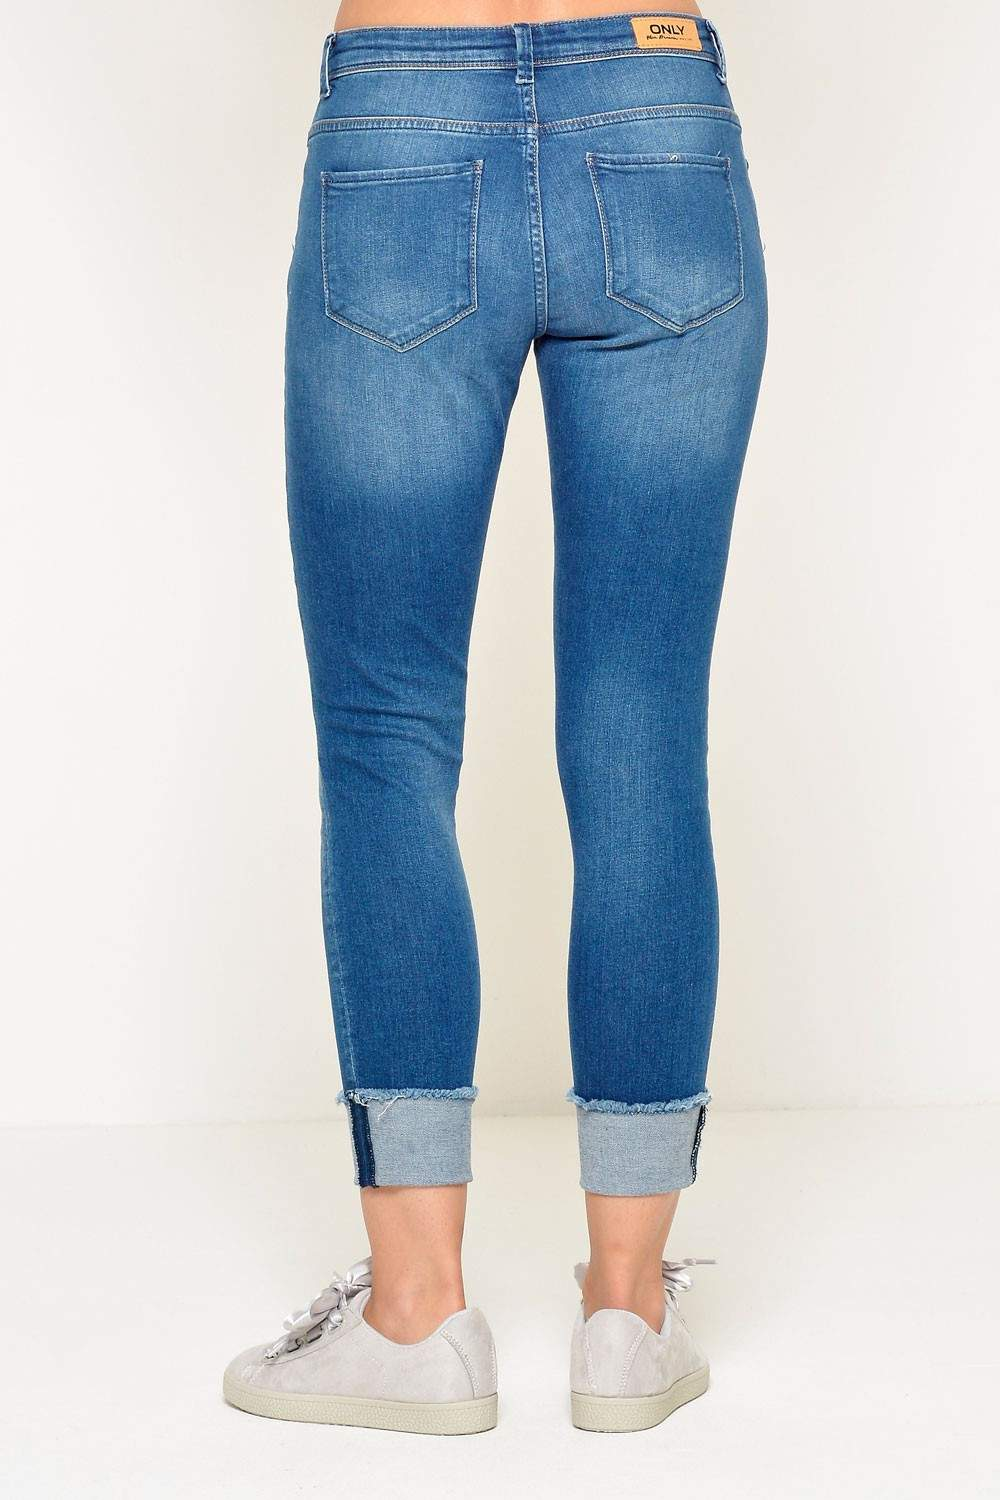 Only Carmen Short Ankle Fold Skinny Jeans   iCLOTHING